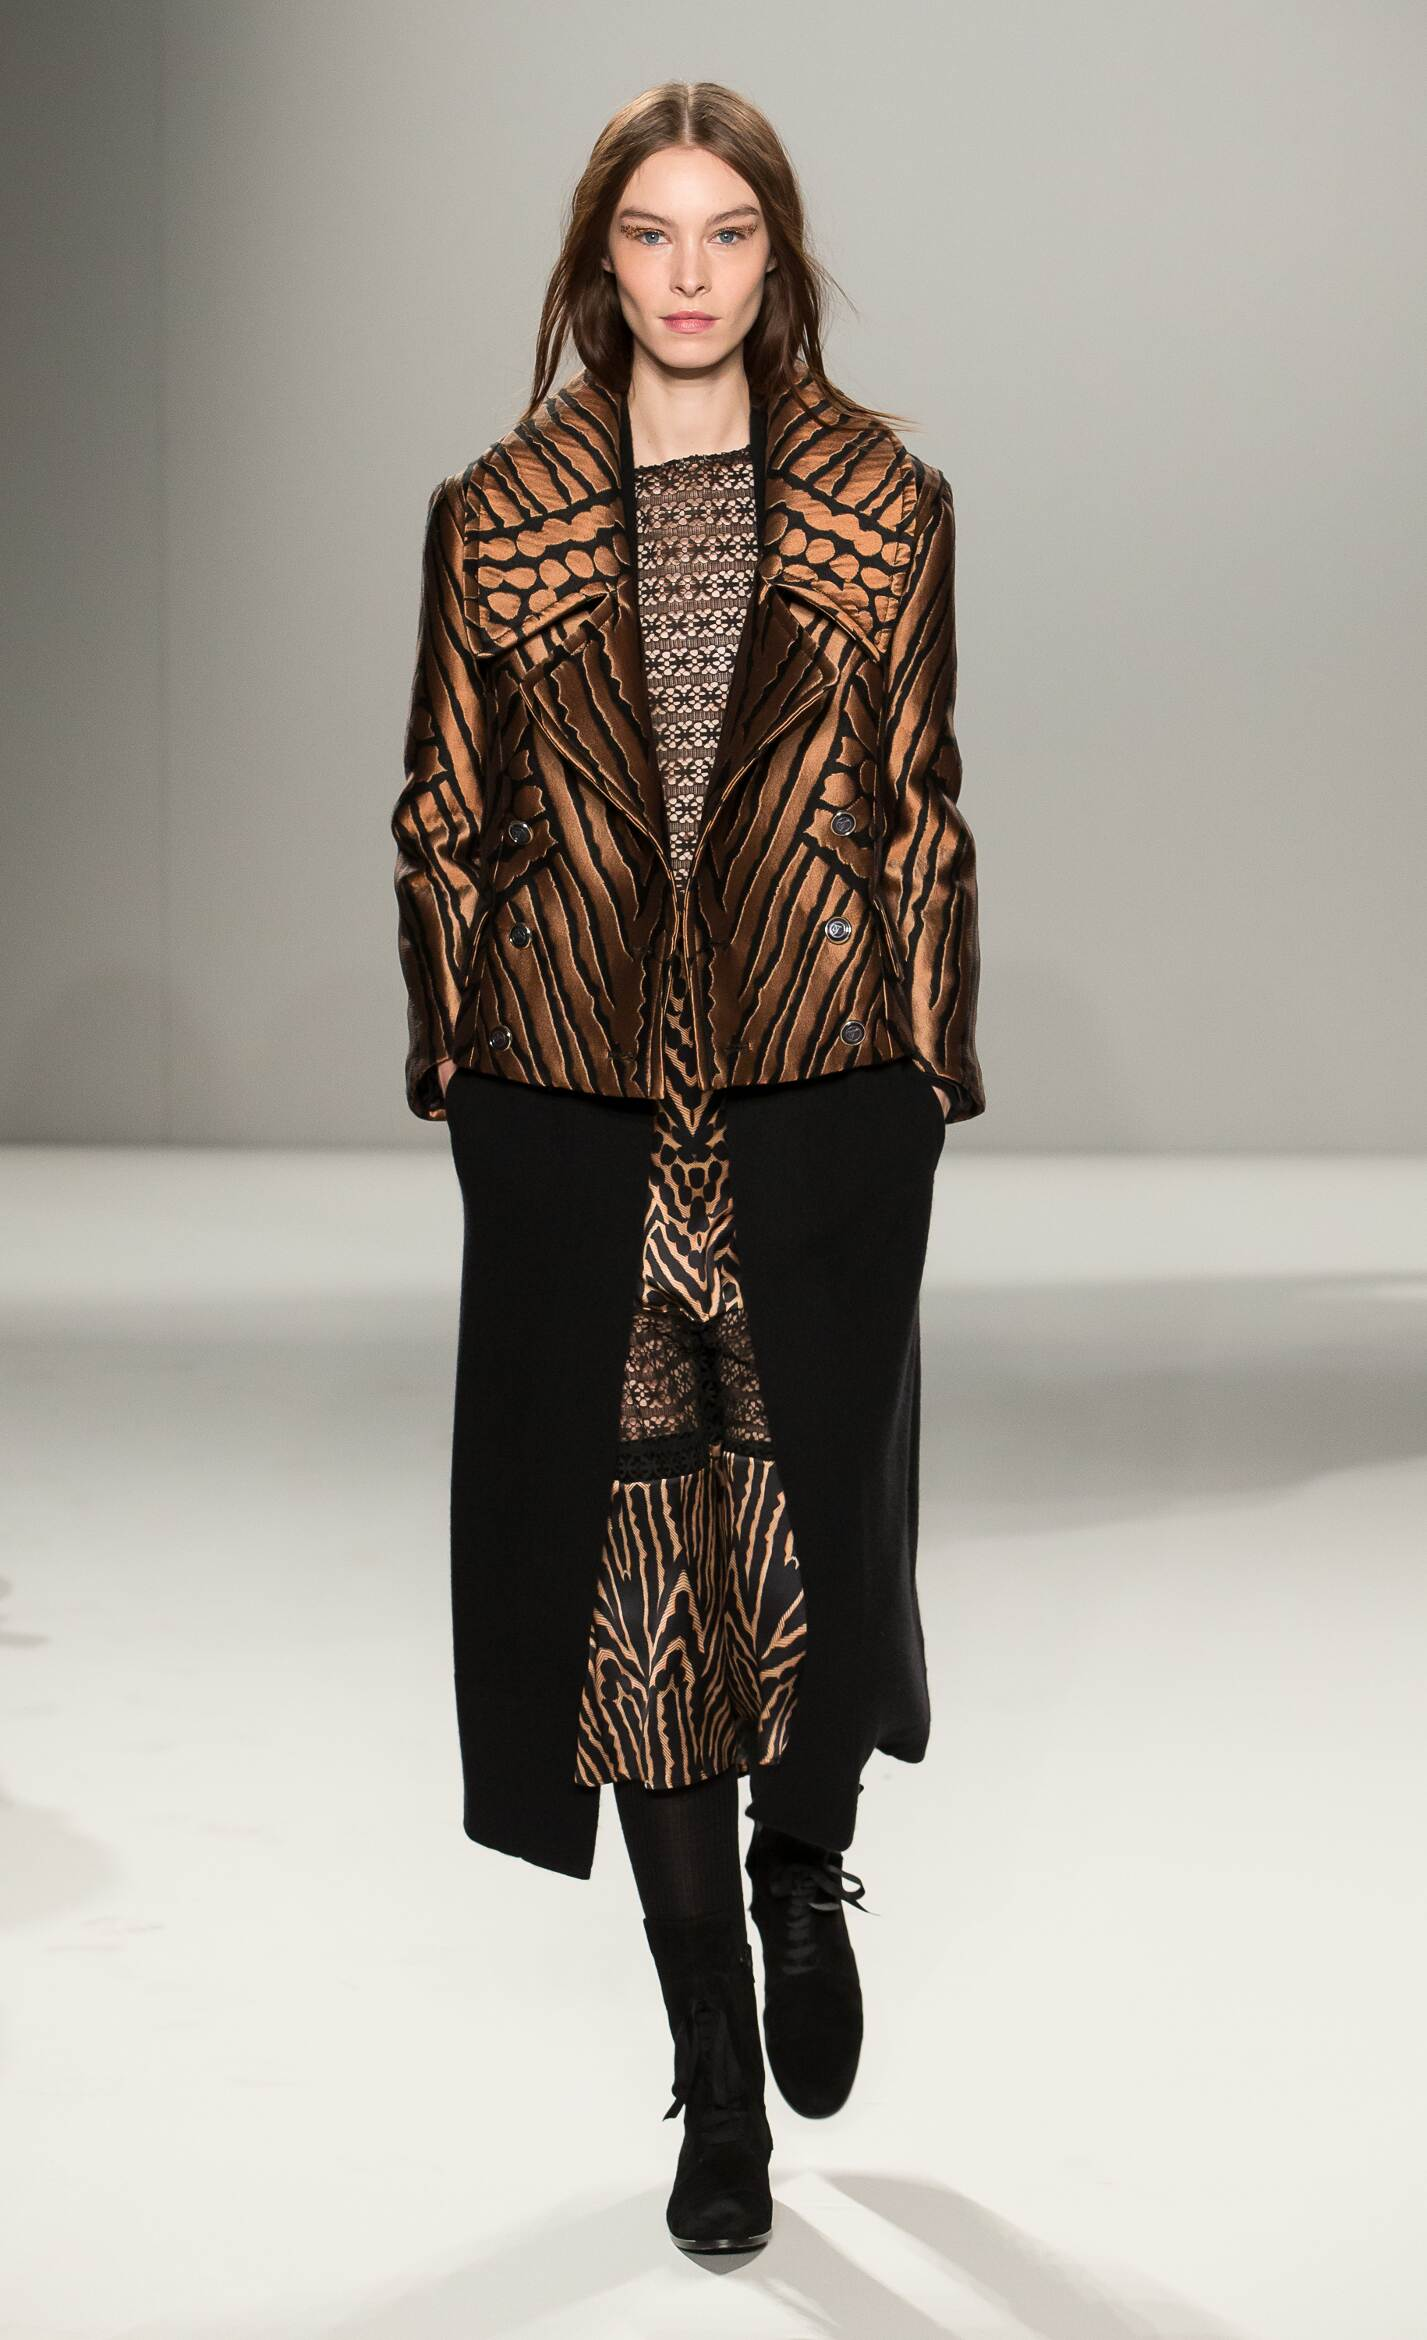 2016 Fall Fashion Woman Temperley London Collection